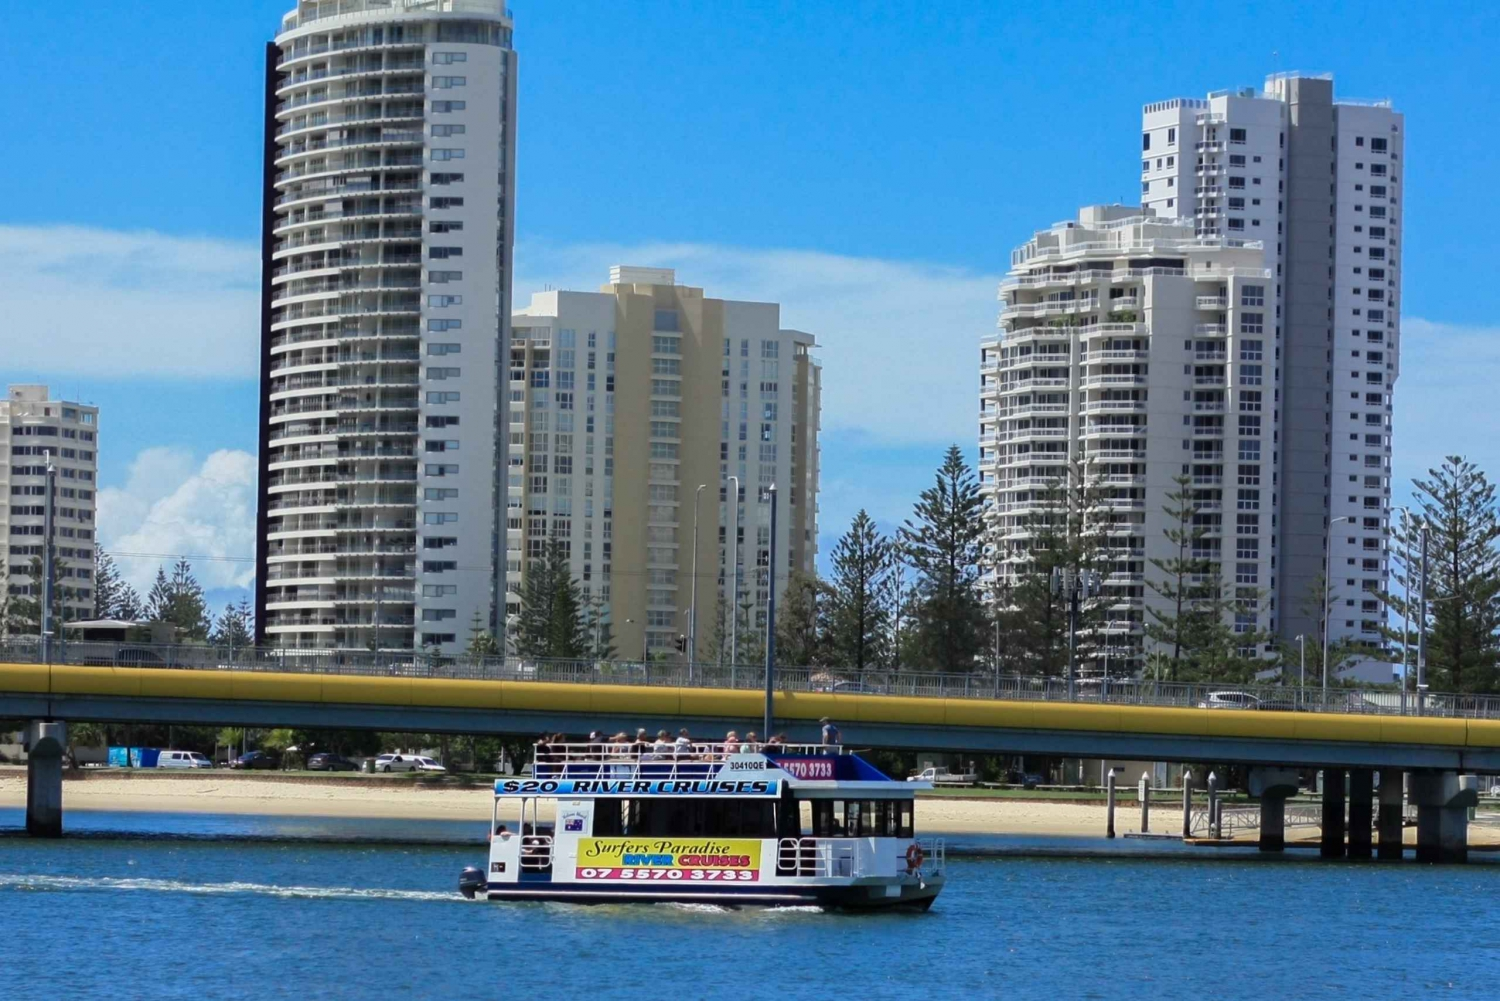 Surfers Paradise: Gold Coast Afternoon River Cruise